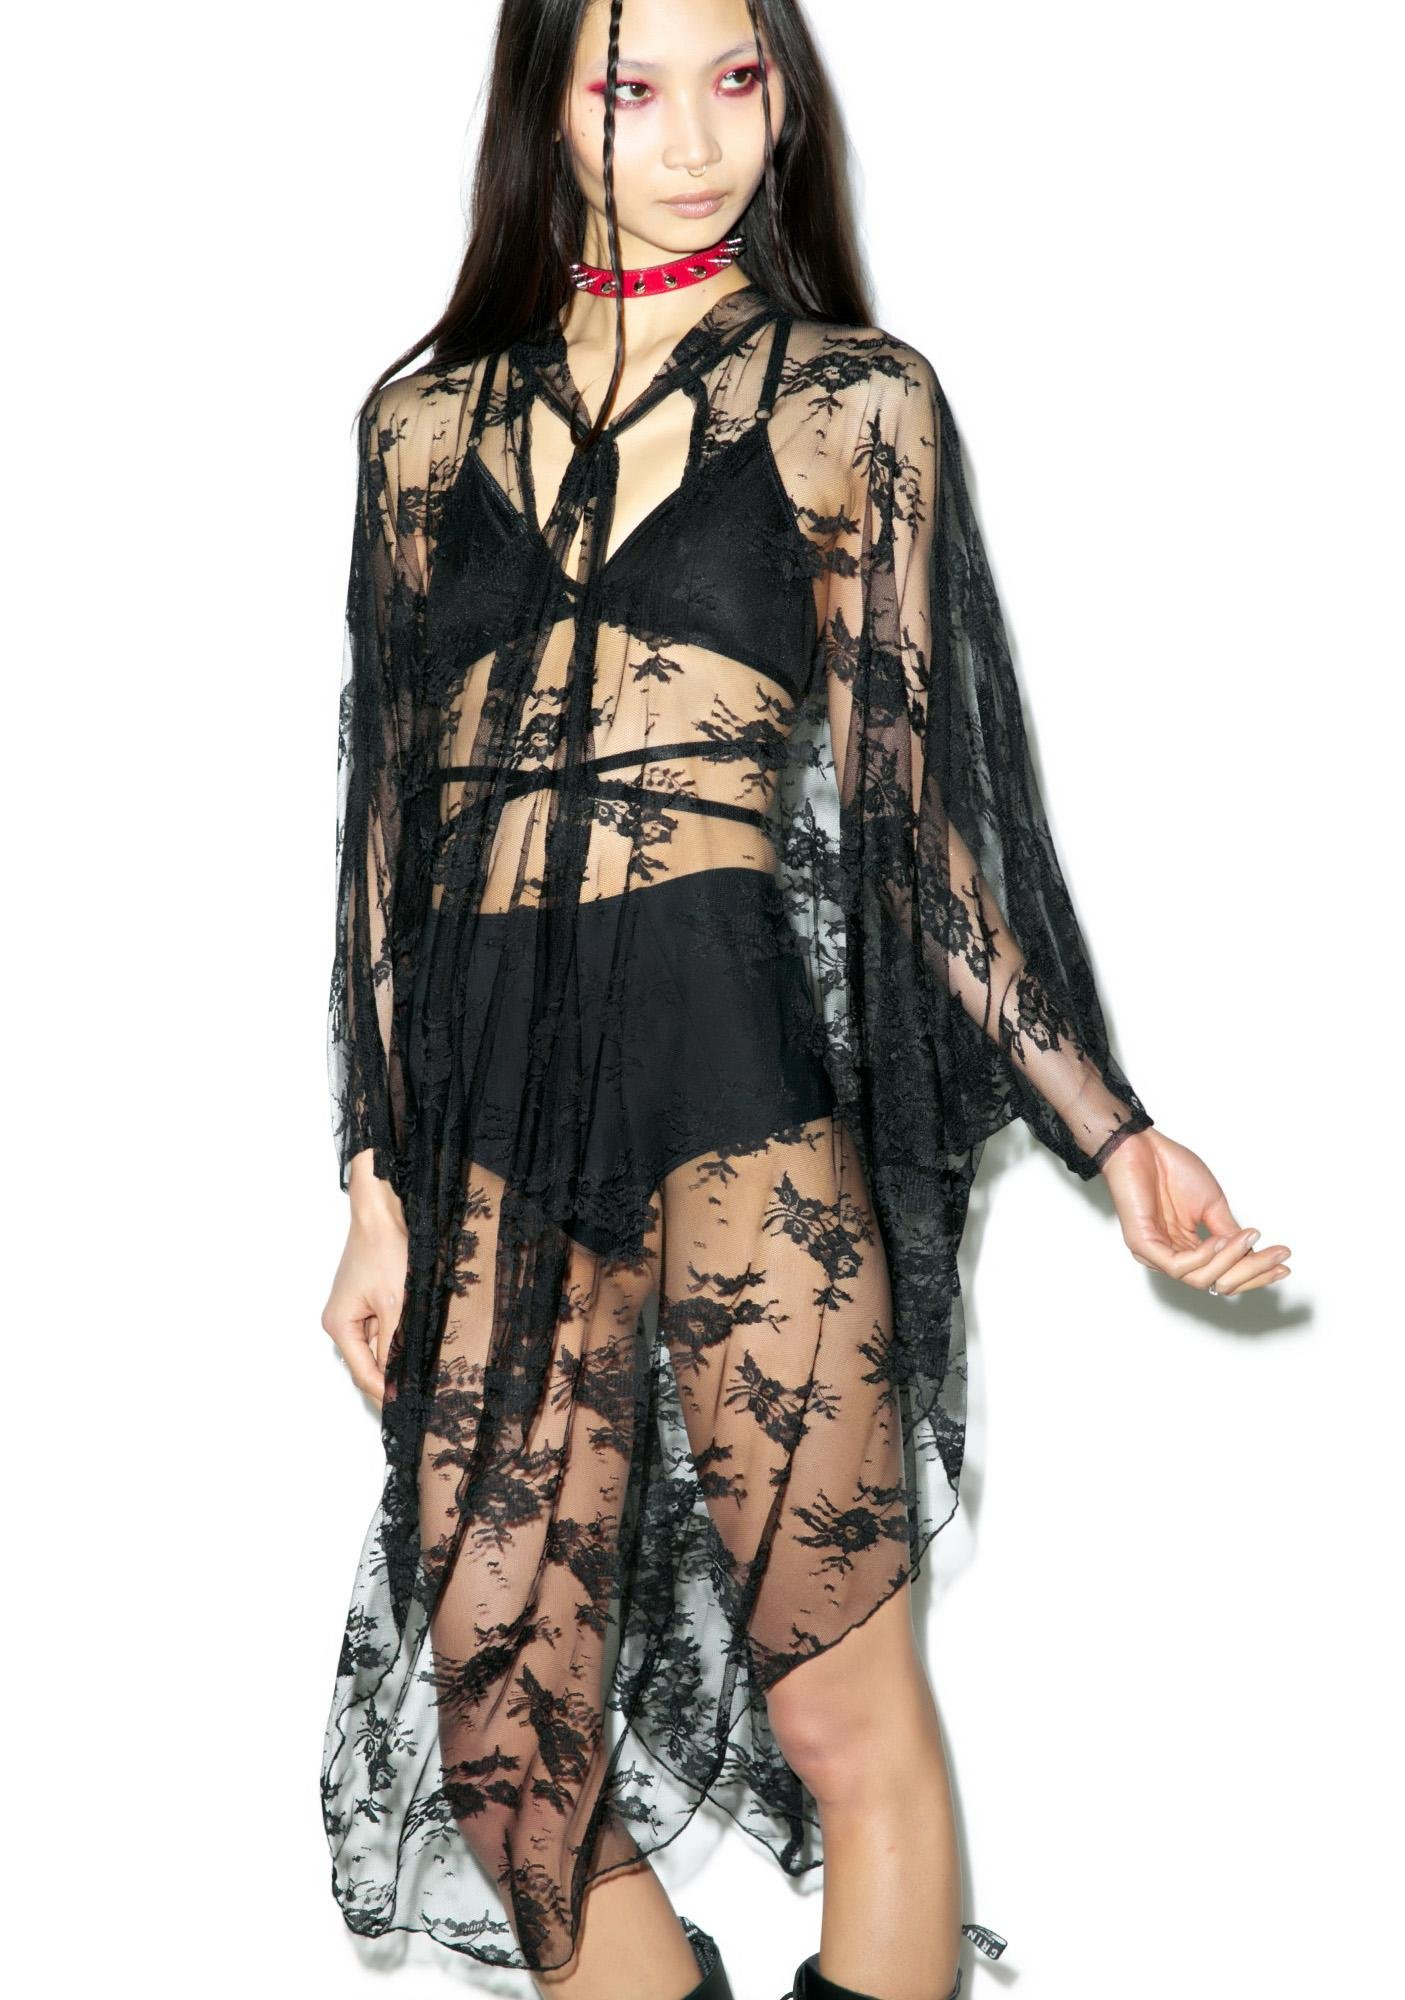 Widow (old) Death Wish Lace Batwing Dress